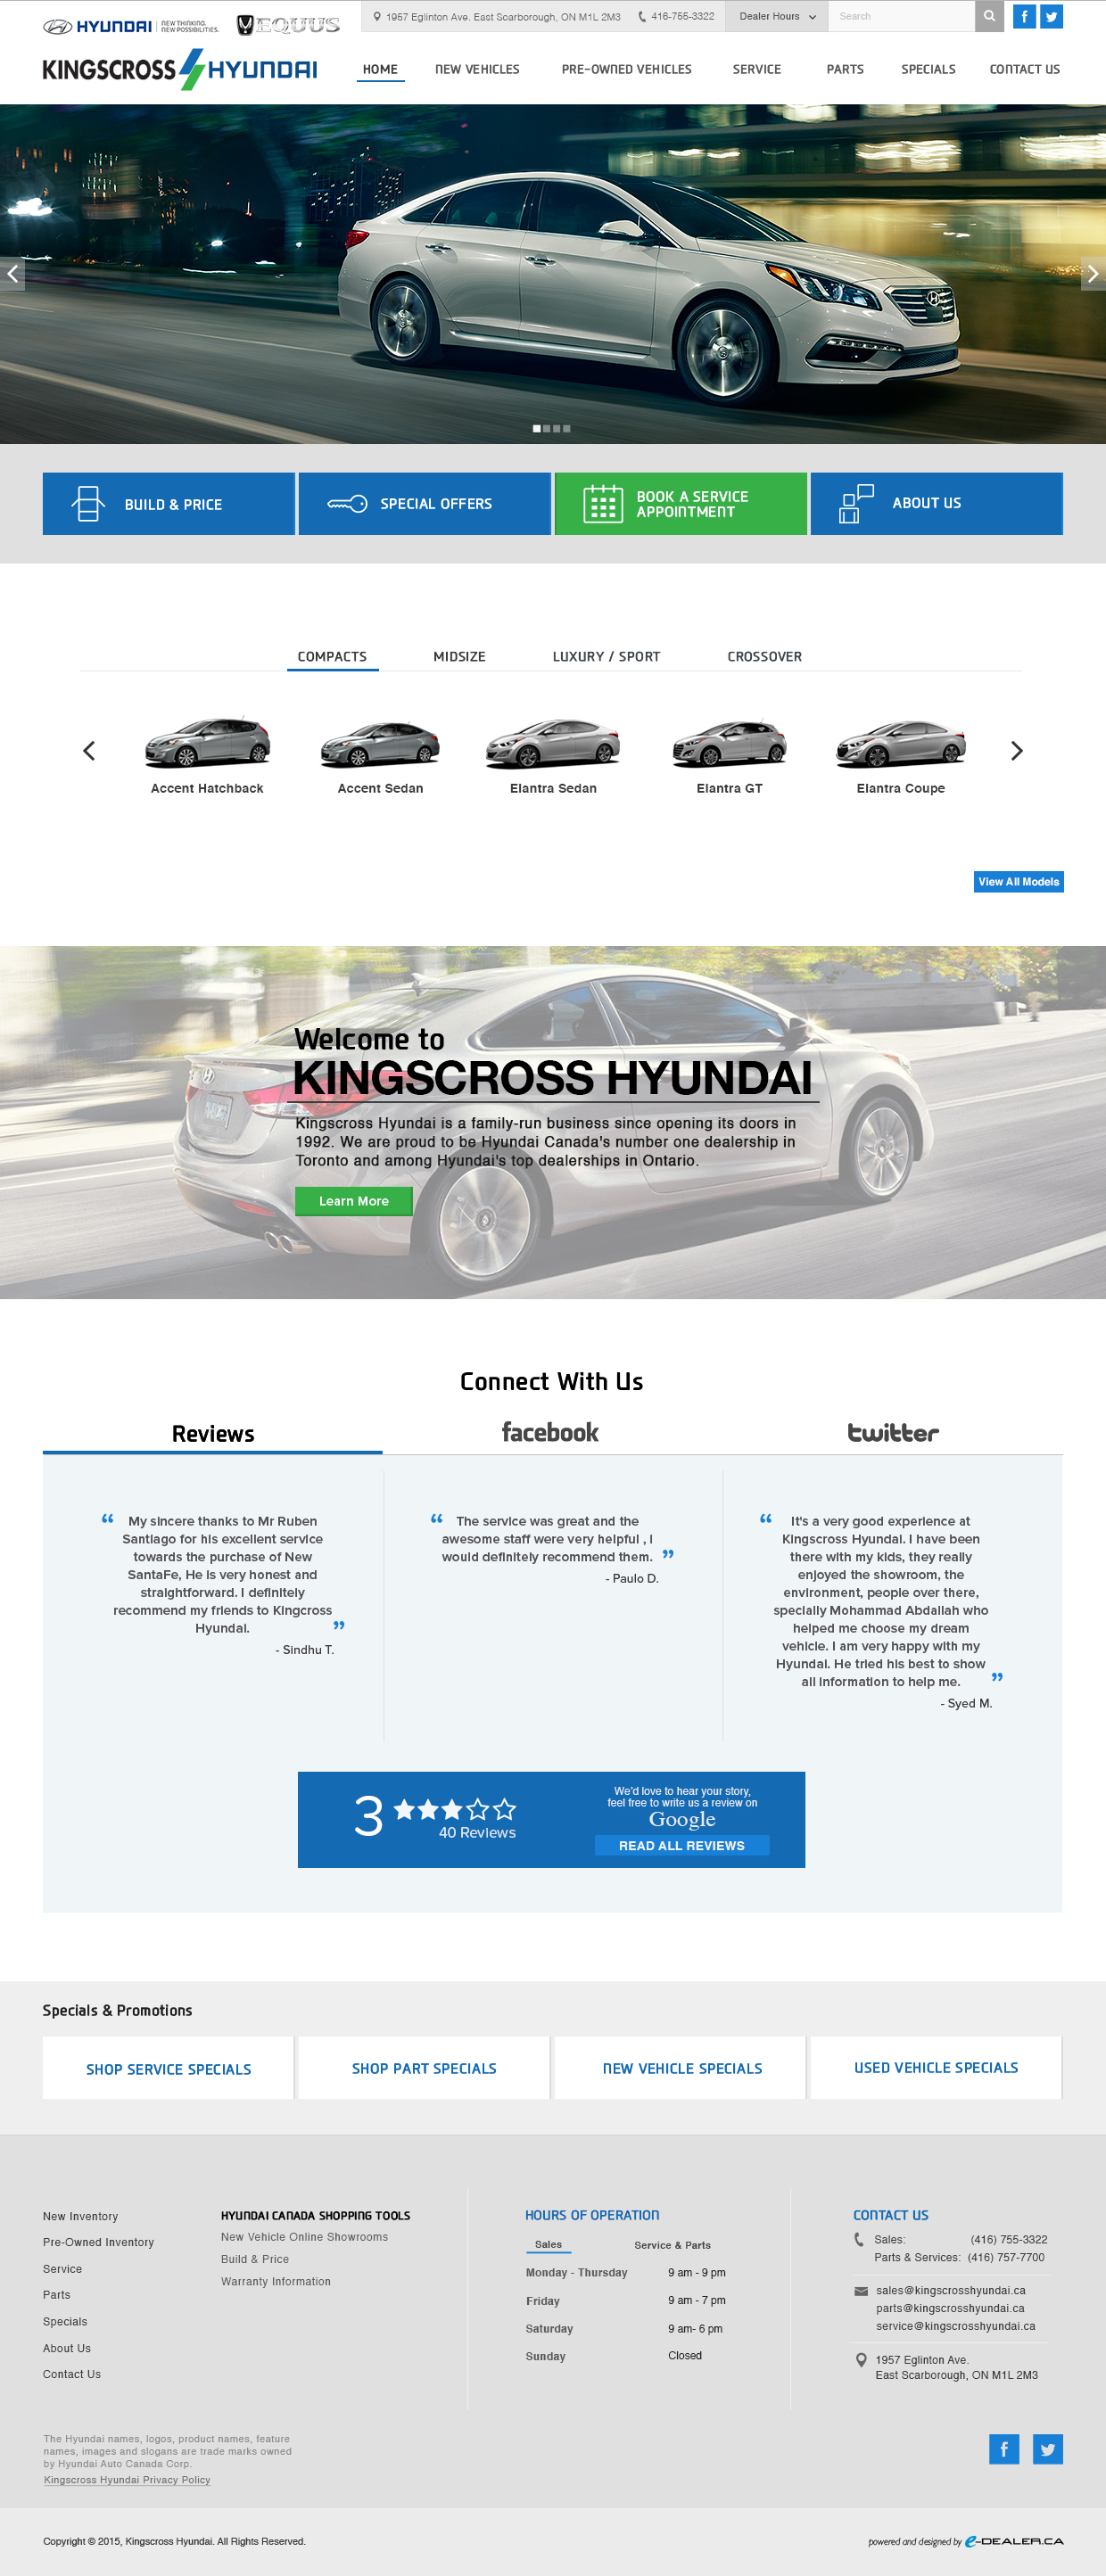 Kingscross-Hyundai